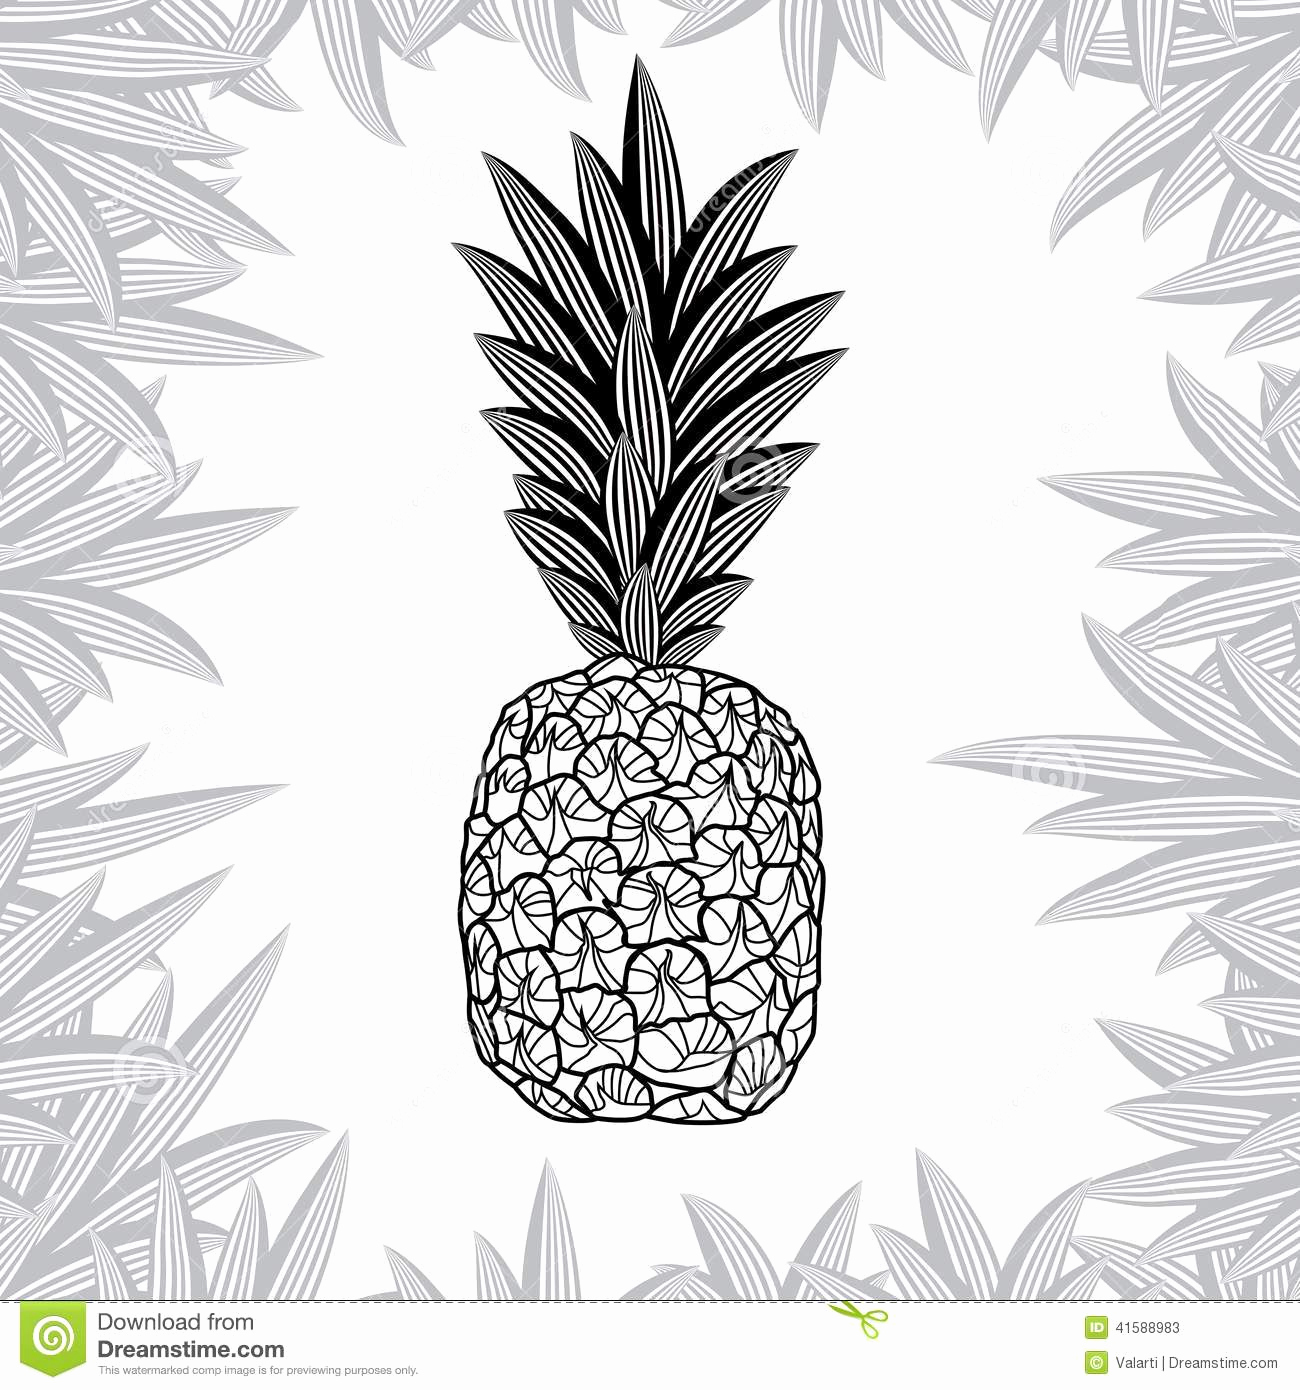 Black and White Illustration Beautiful Pineapple isolated White Background Vector